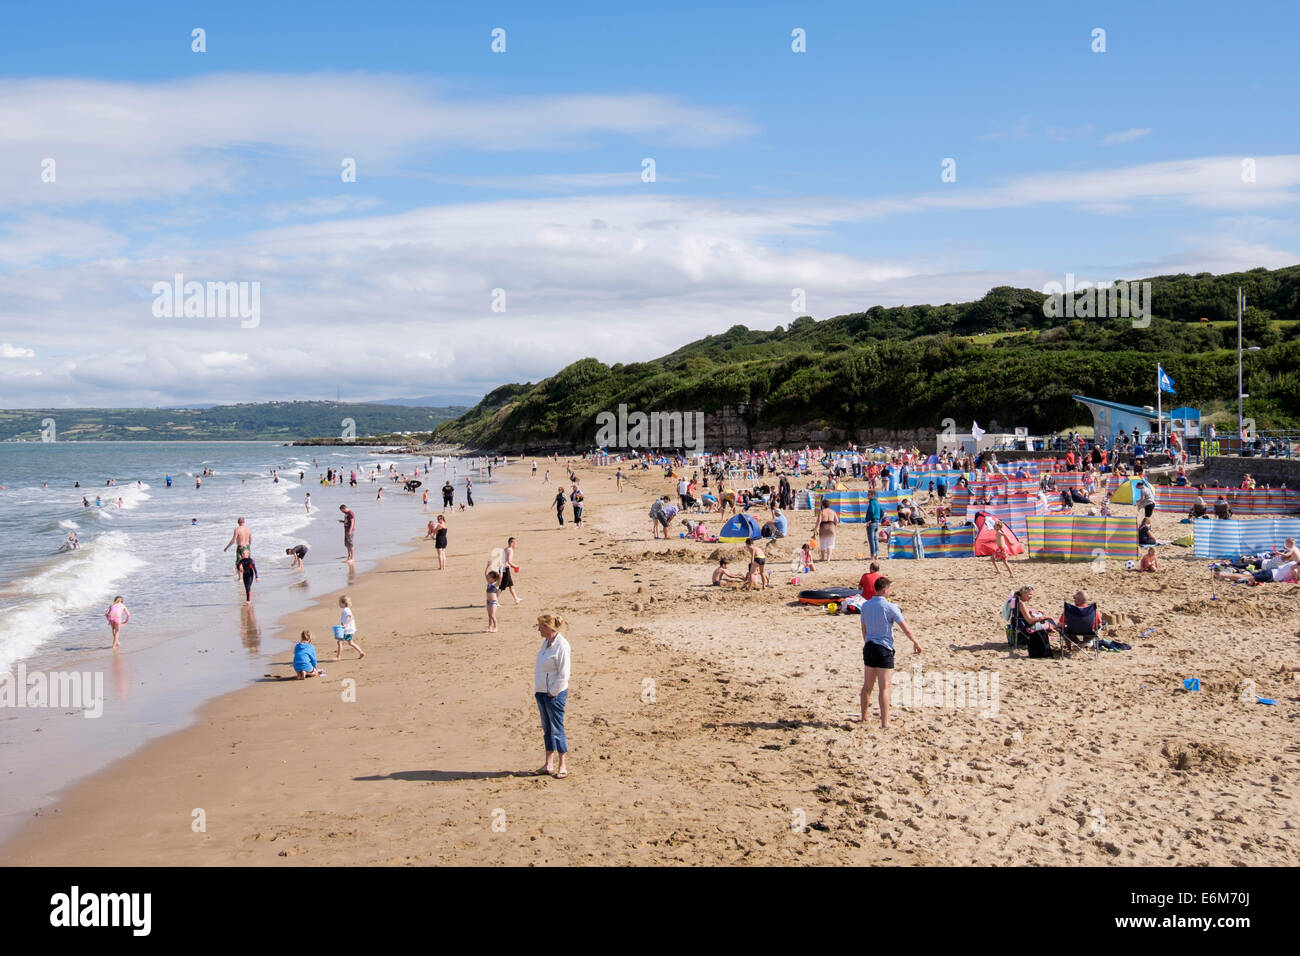 Holidaymakers and day-trippers on busy safe blue flag sandy beach in summer. Benllech, Isle of Anglesey, Wales, - Stock Image